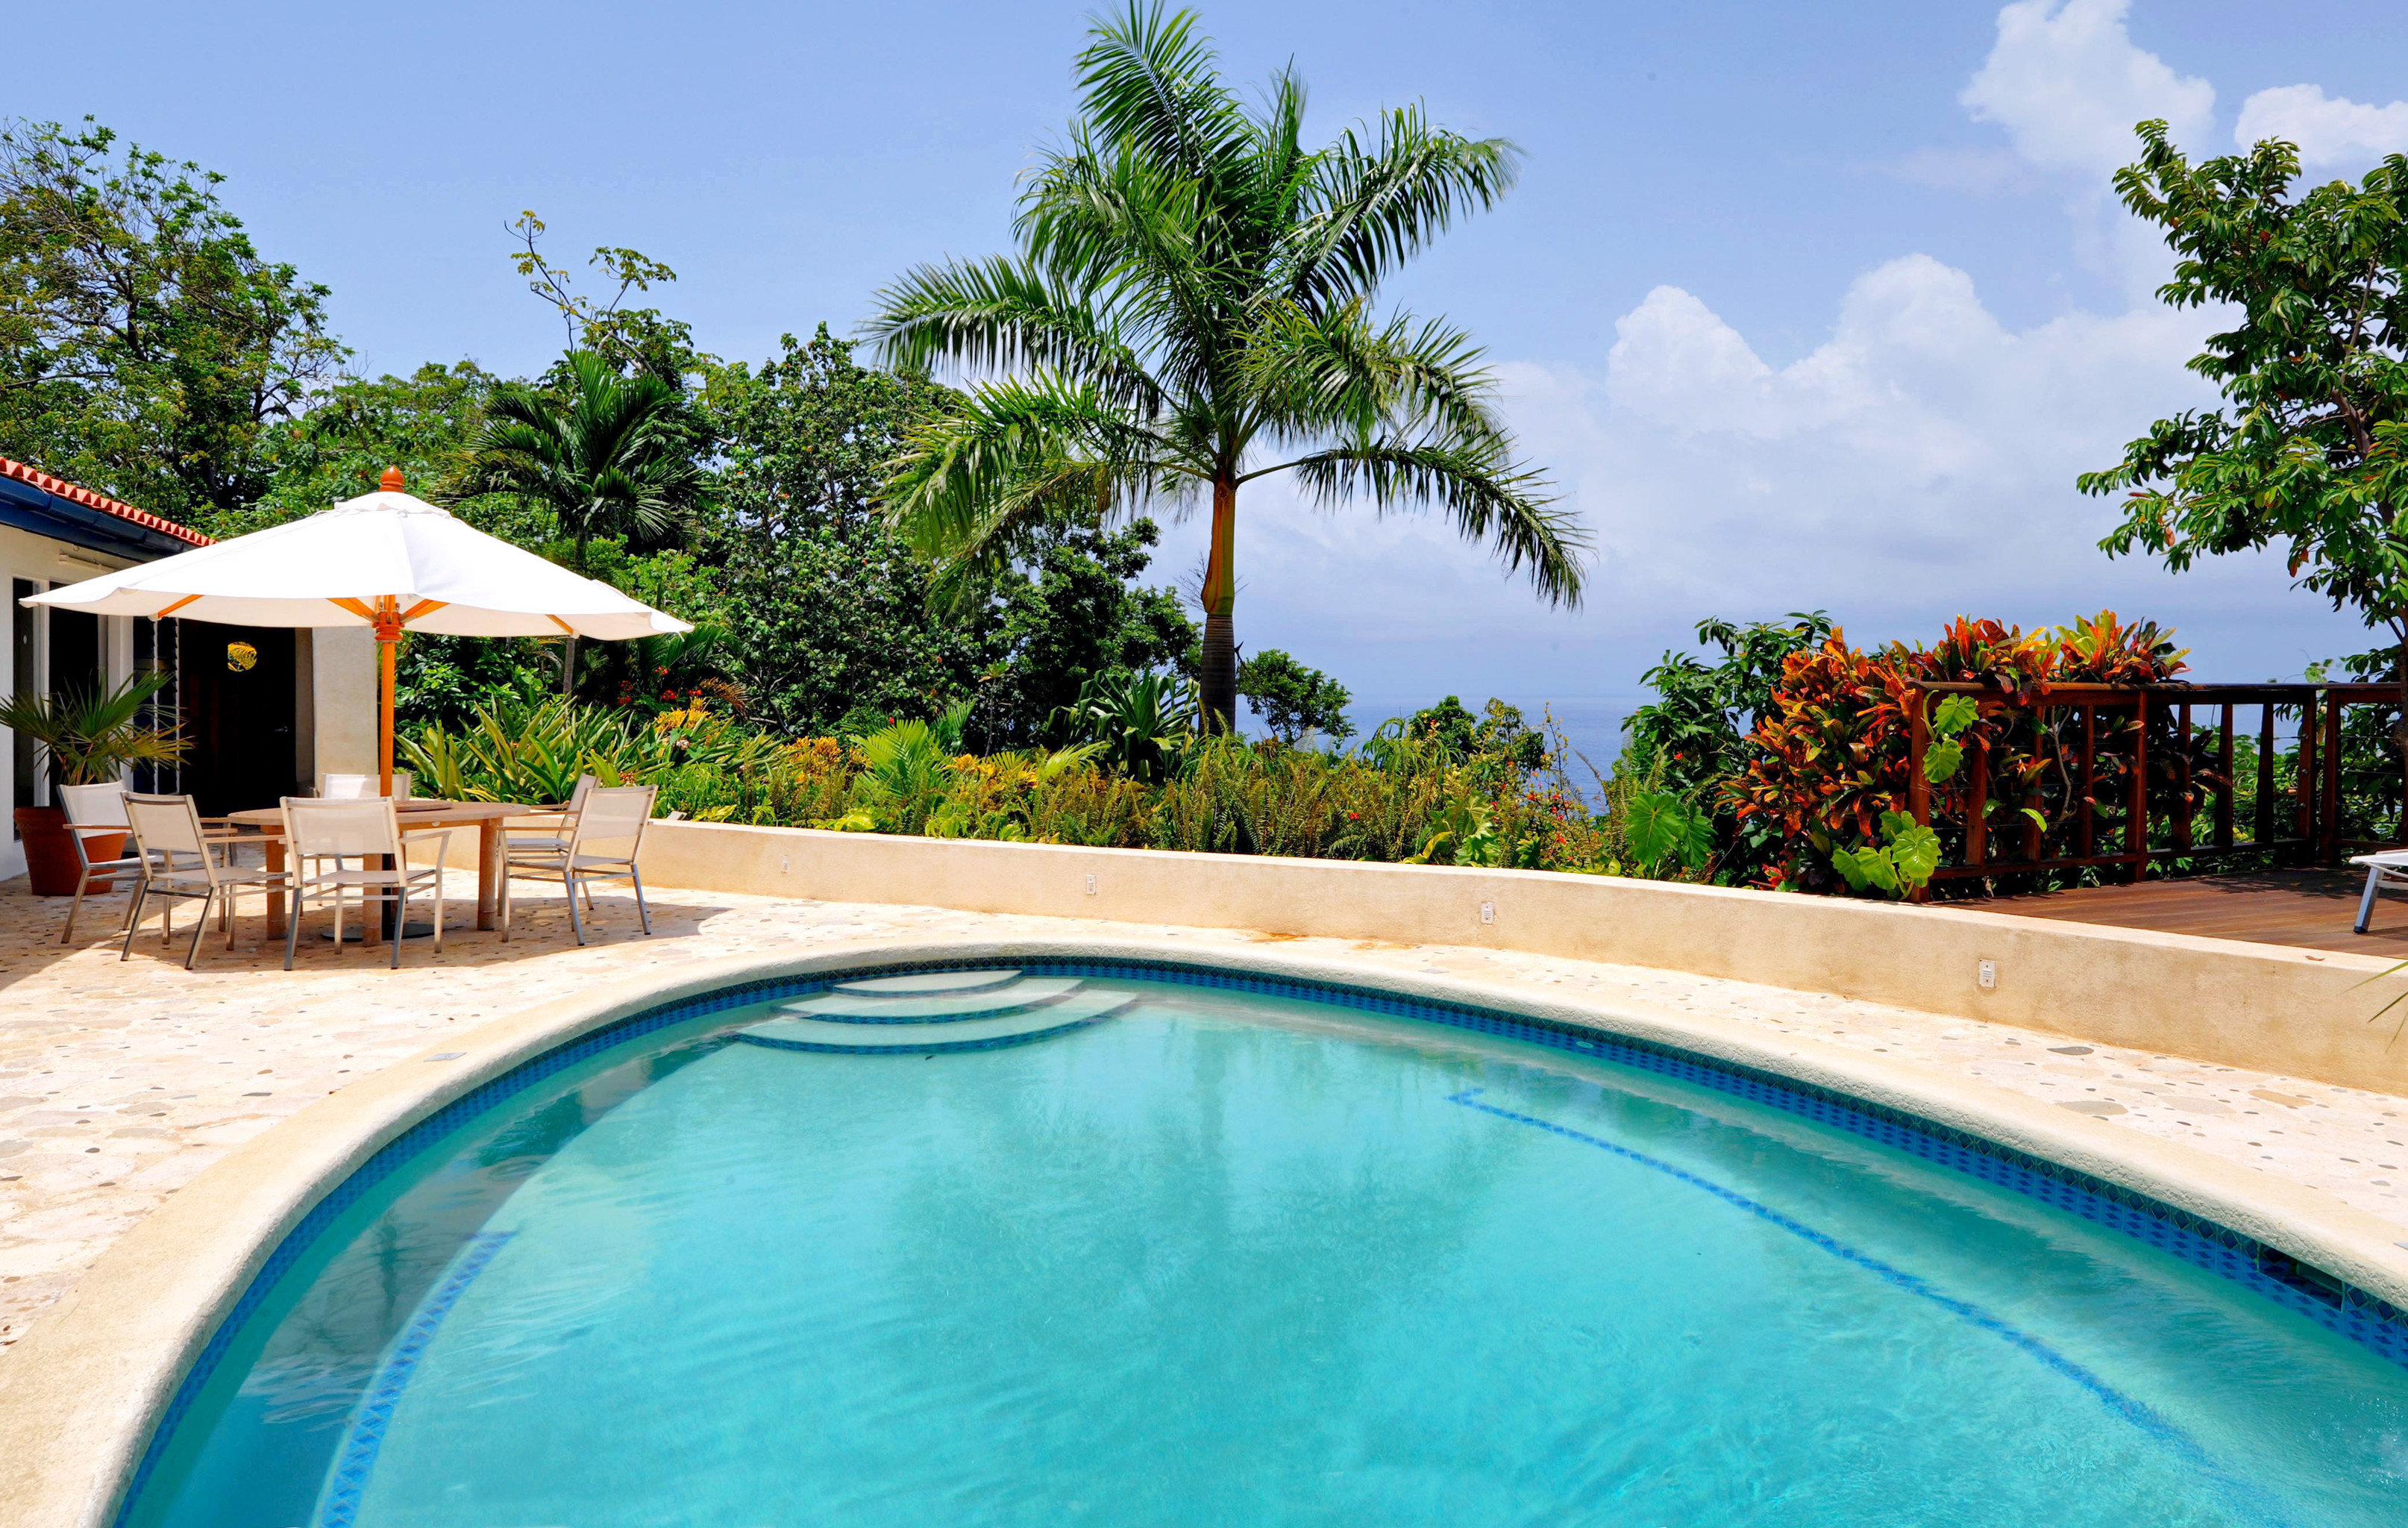 Boutique Pool Scenic views Tropical Waterfront sky tree swimming pool property leisure Resort Villa swimming caribbean backyard